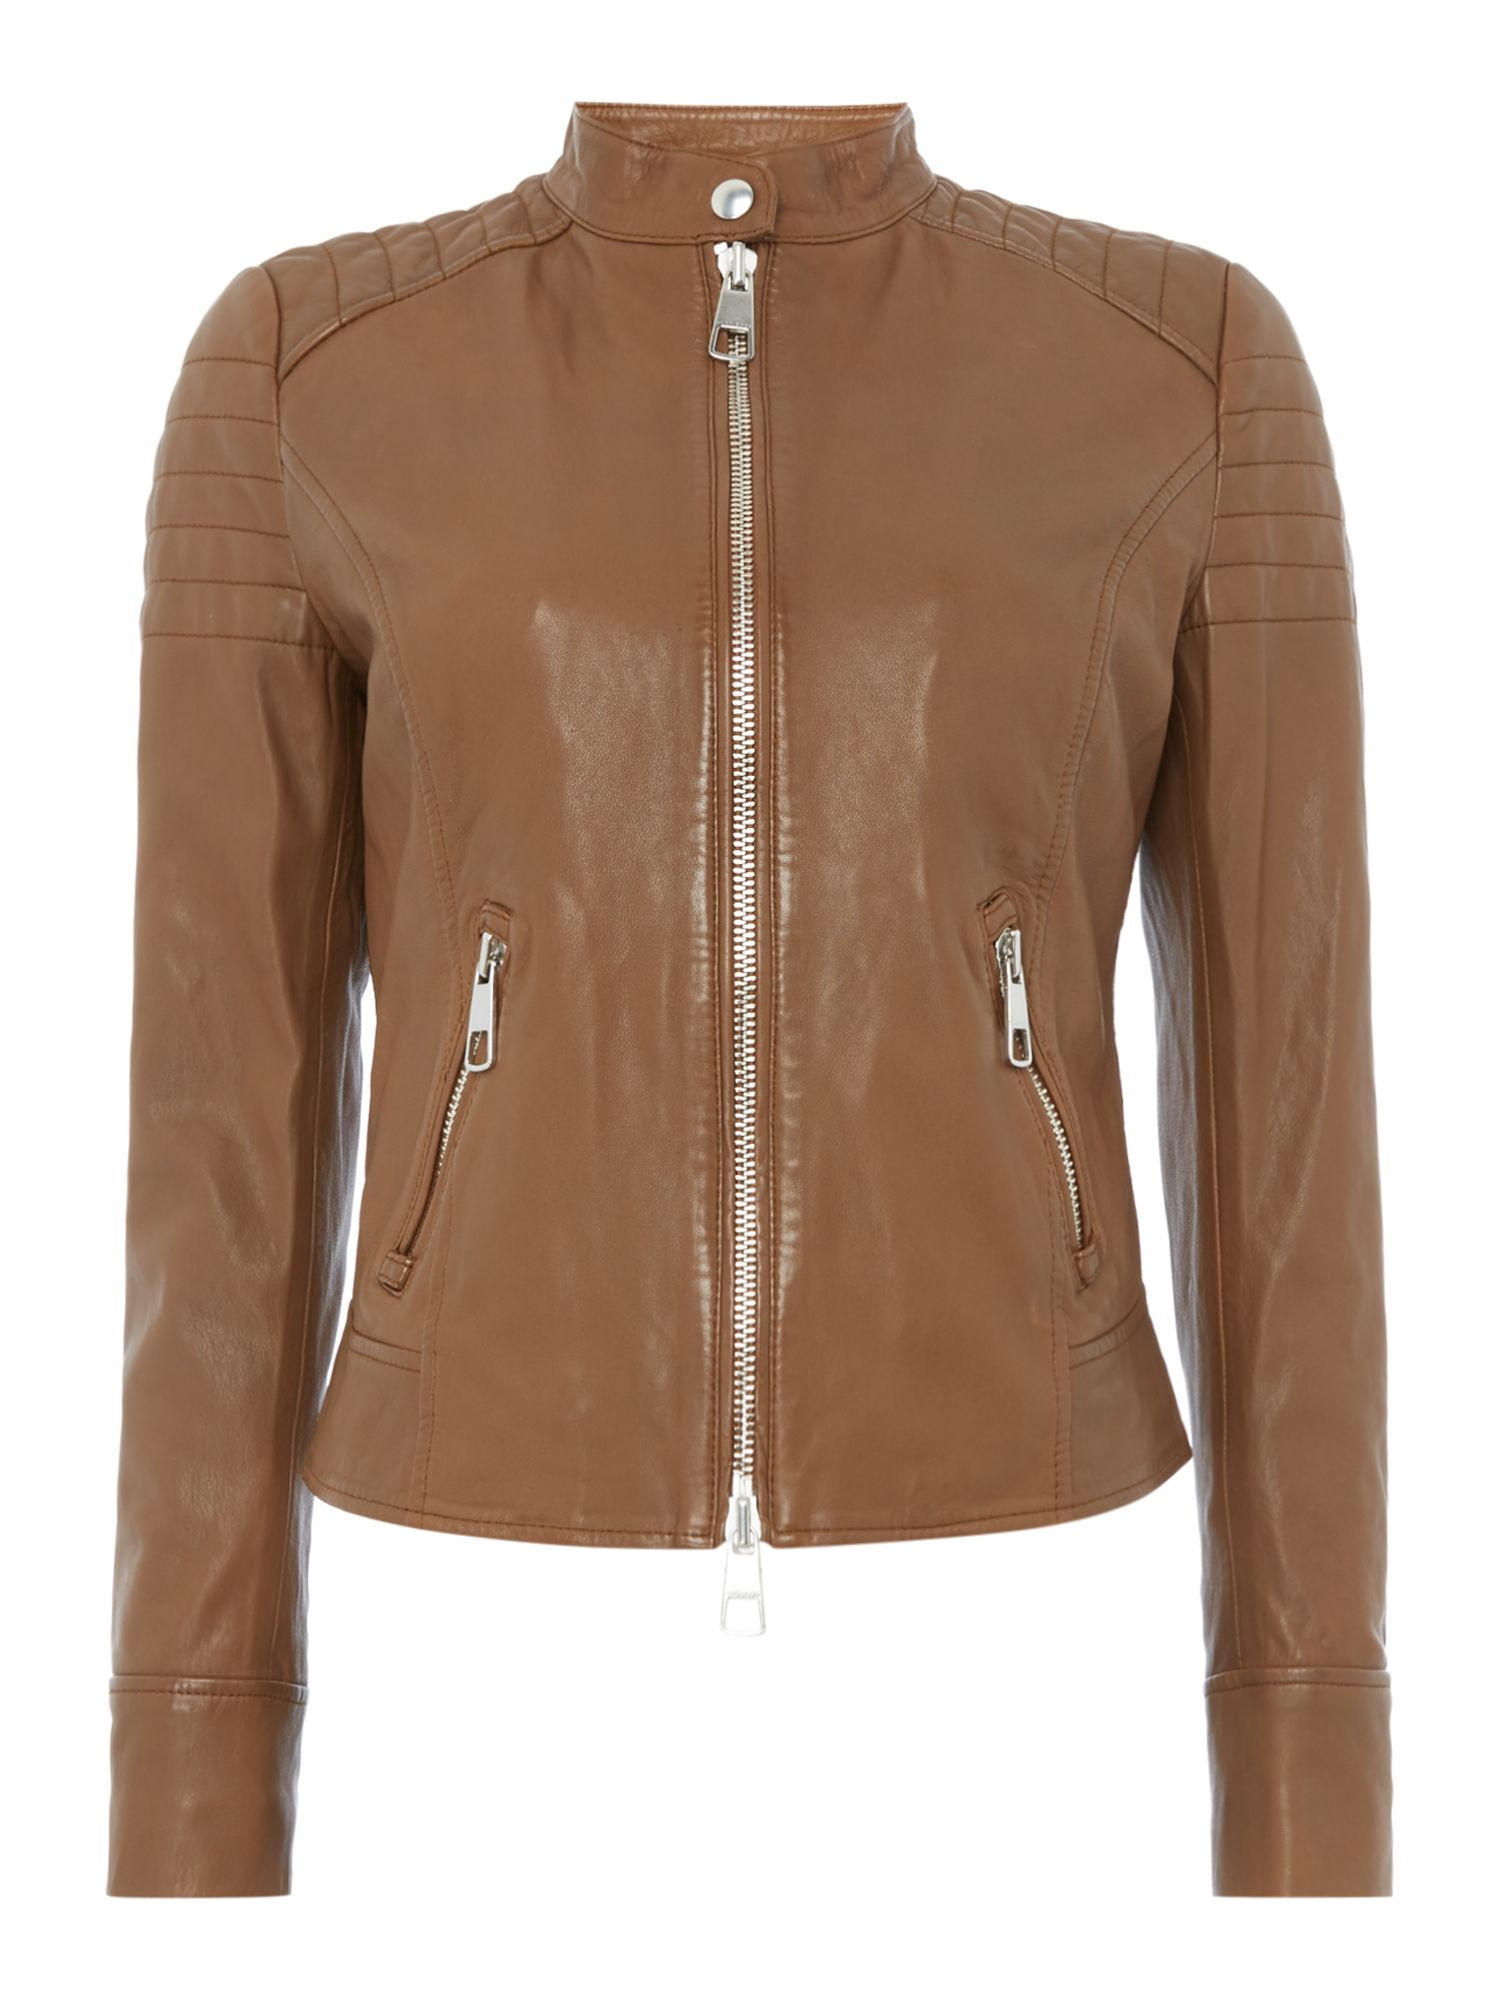 Hugo Boss Leather jacket with zipper pockets, Tan